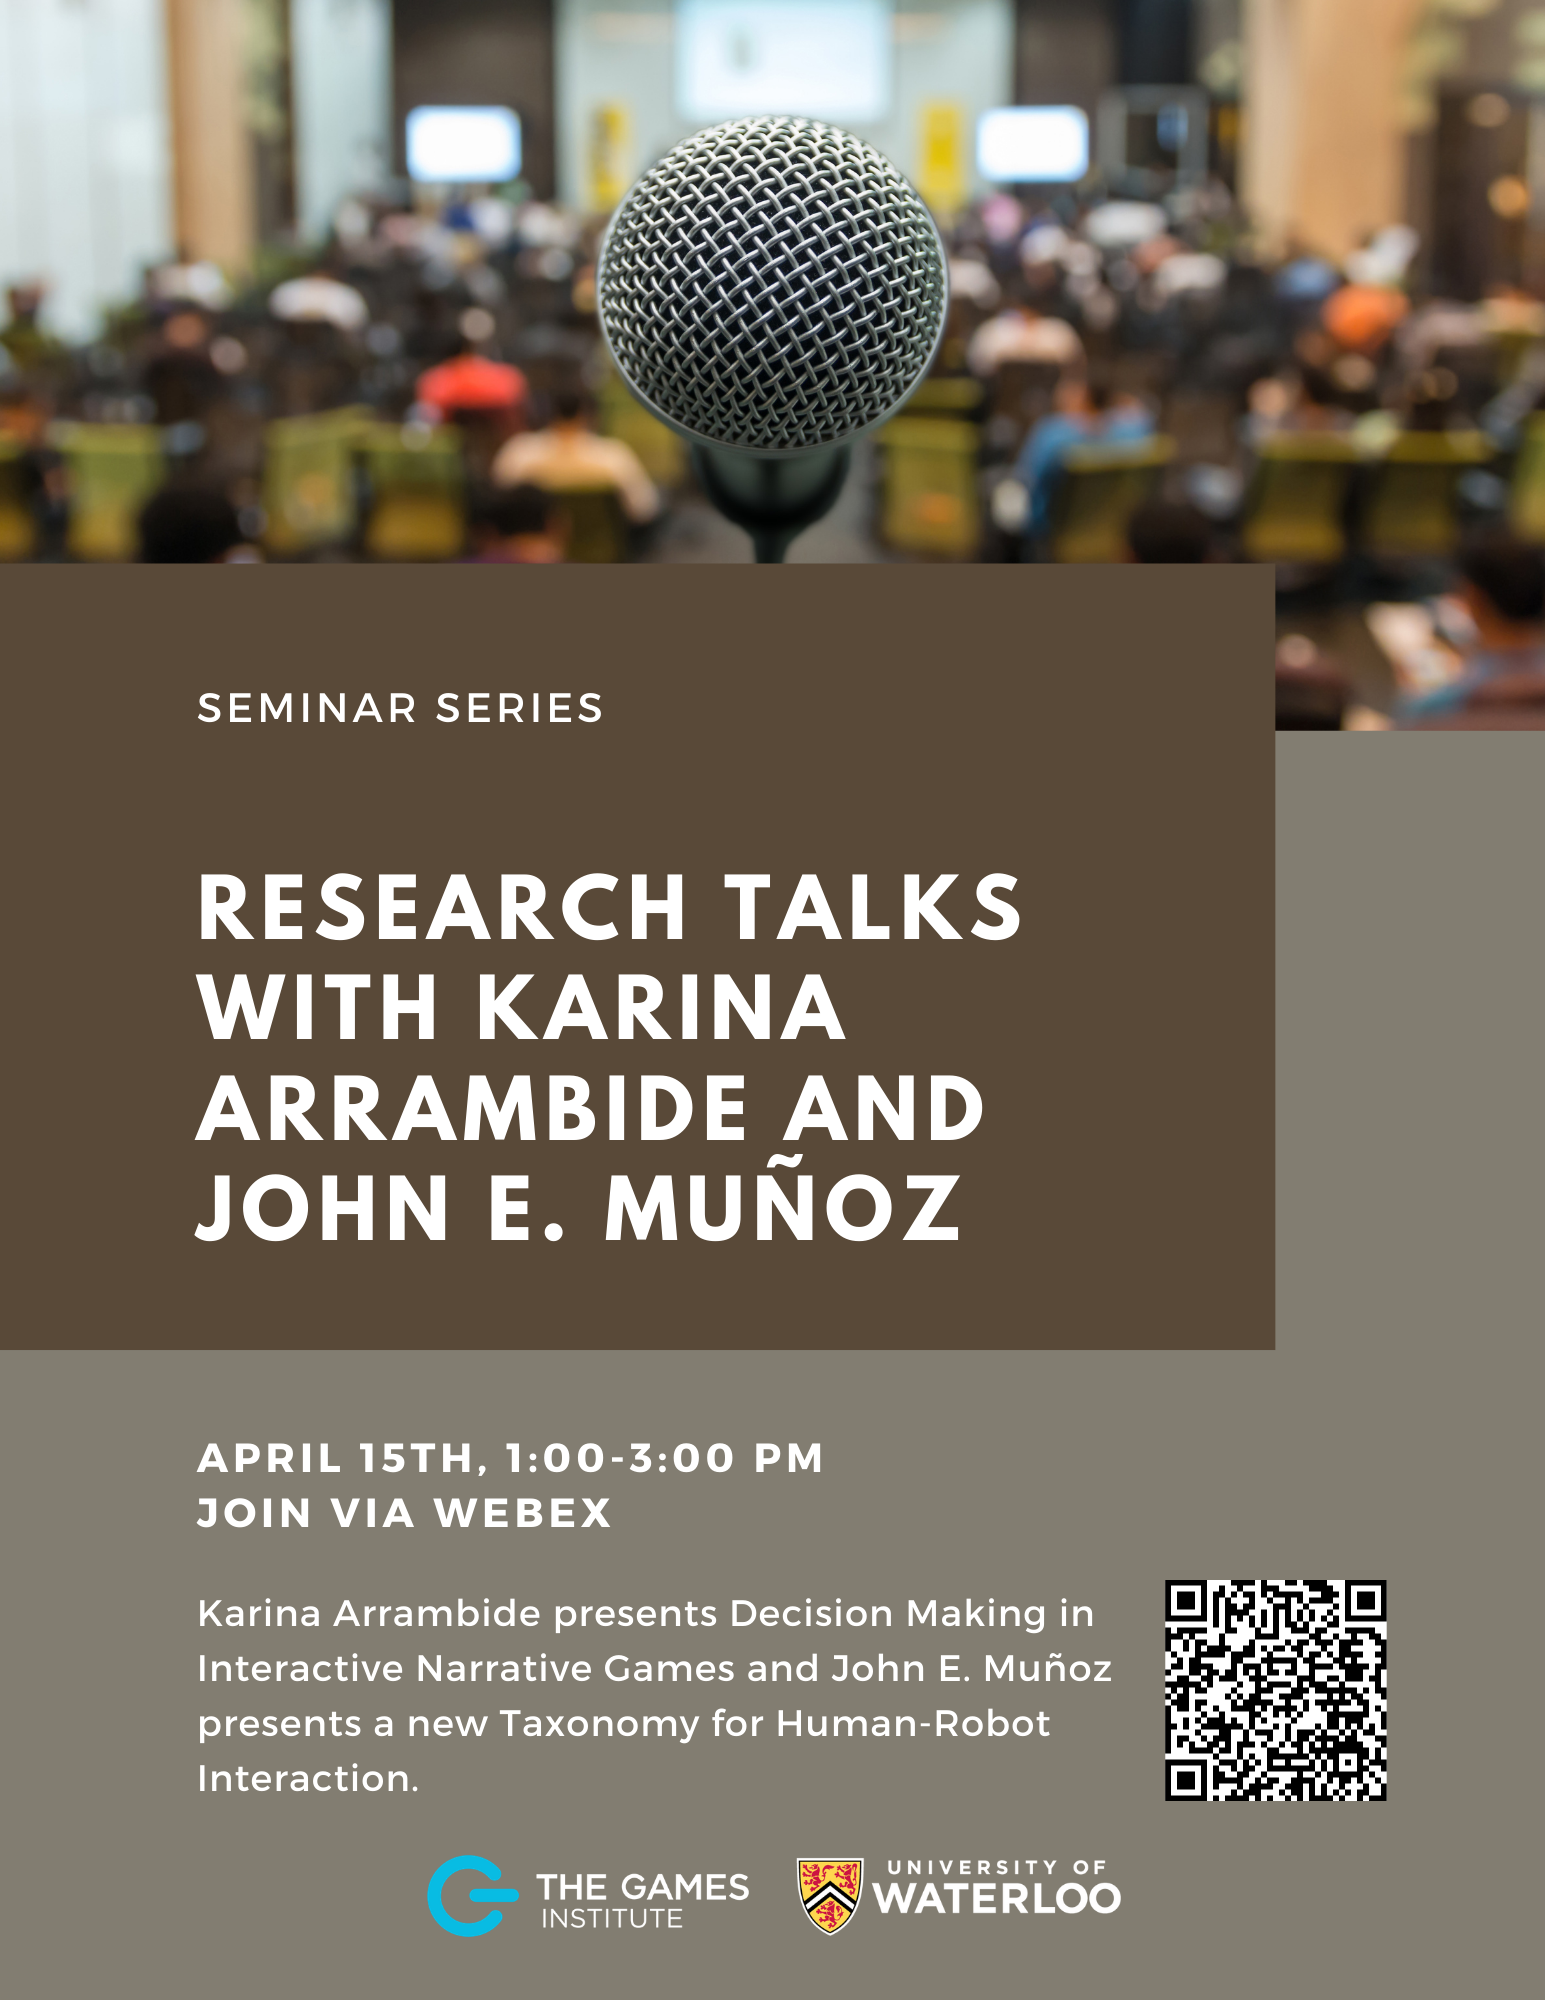 Research talks with Karina Arrambide and John E. Munoz